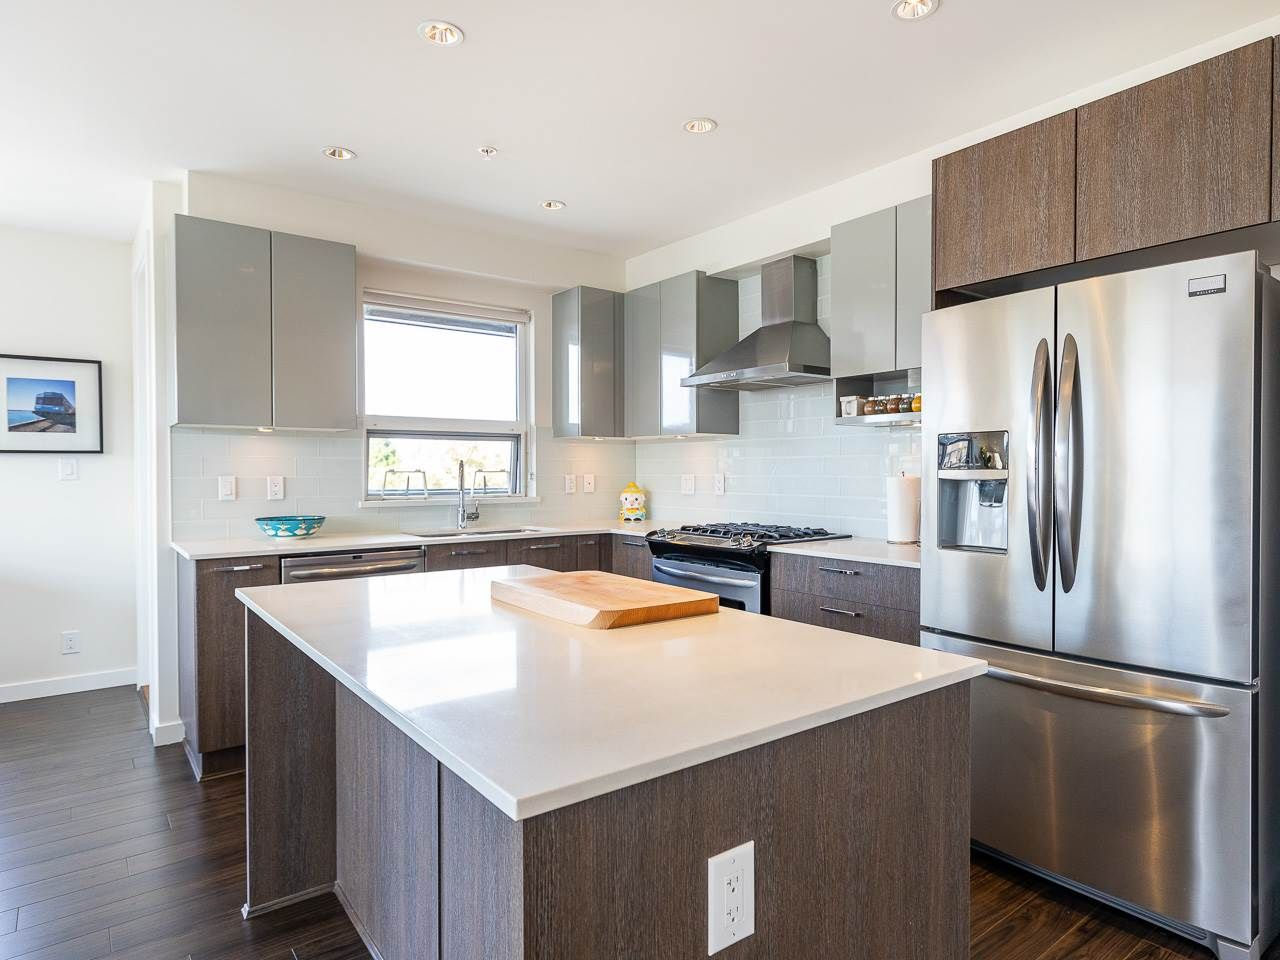 Photo 5: Photos: 306 202 E 24TH AVENUE in Vancouver: Main Condo for sale (Vancouver East)  : MLS®# R2406713